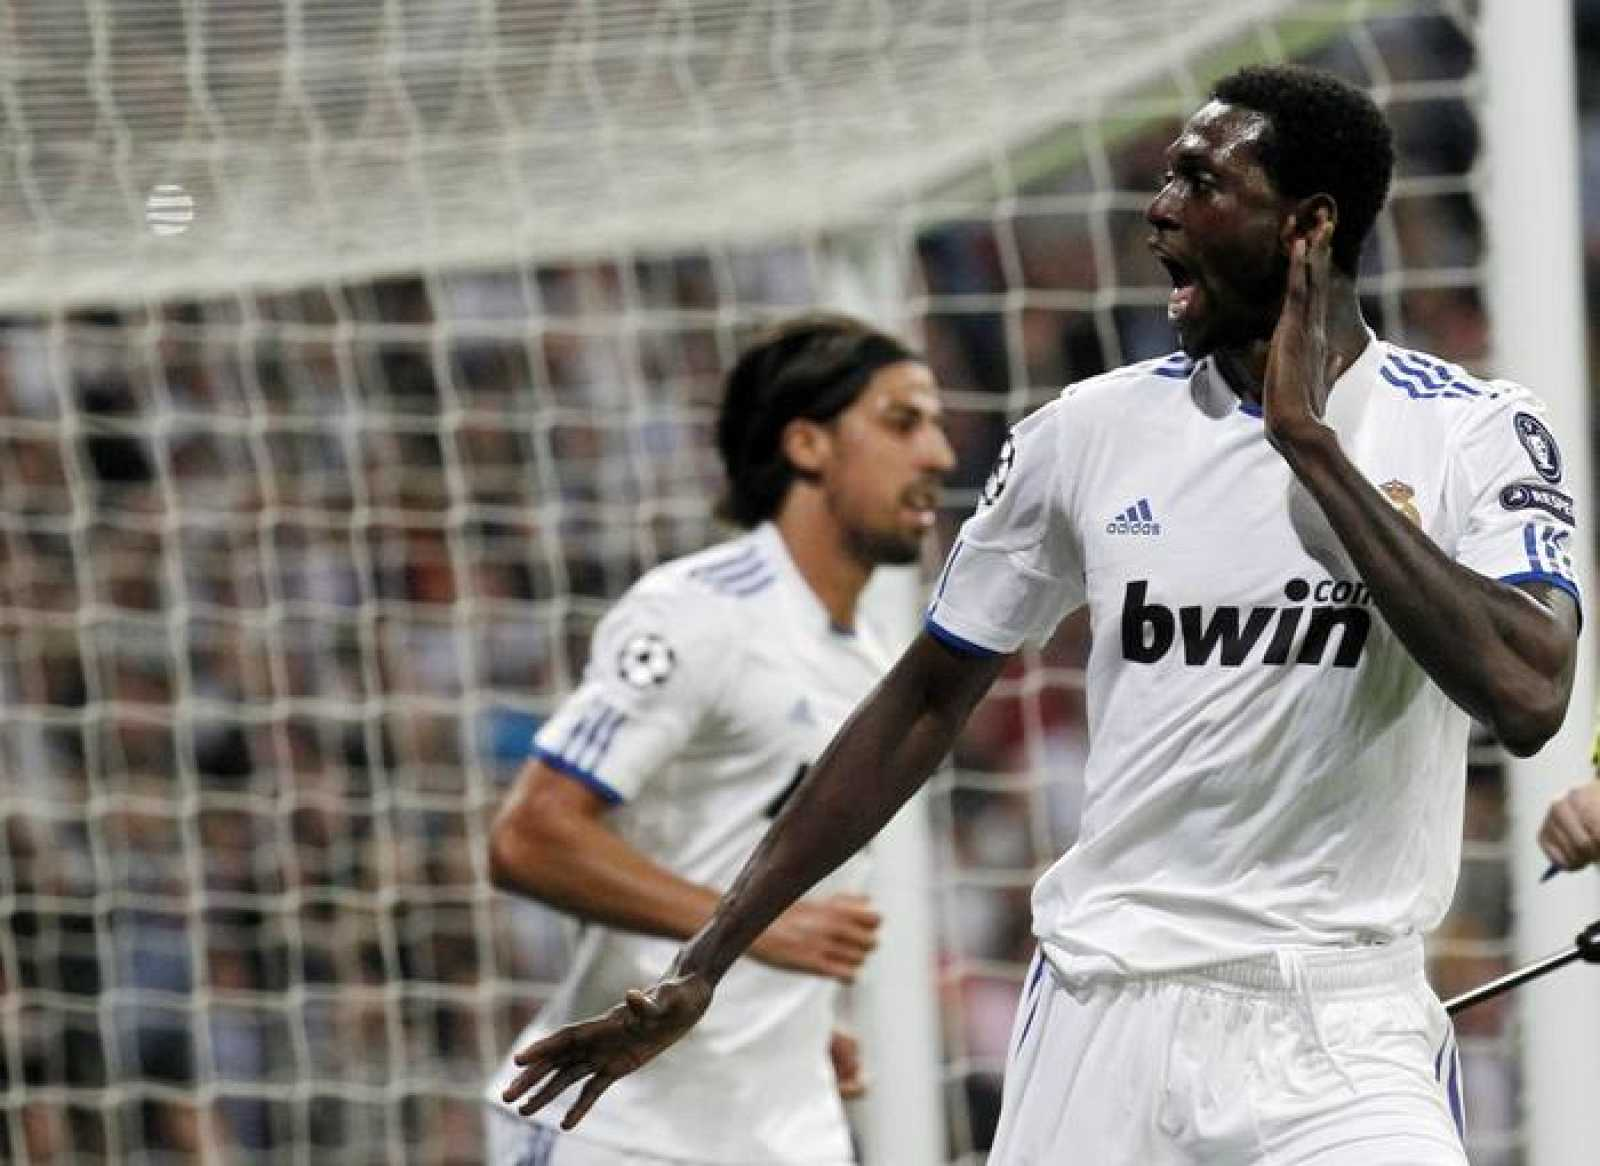 Real Madrid's Adebayor celebrates his second goal against Tottenham Hotspur during their first leg of their Champions League quarter-final soccer match against Tottenham Hotspur in Madrid